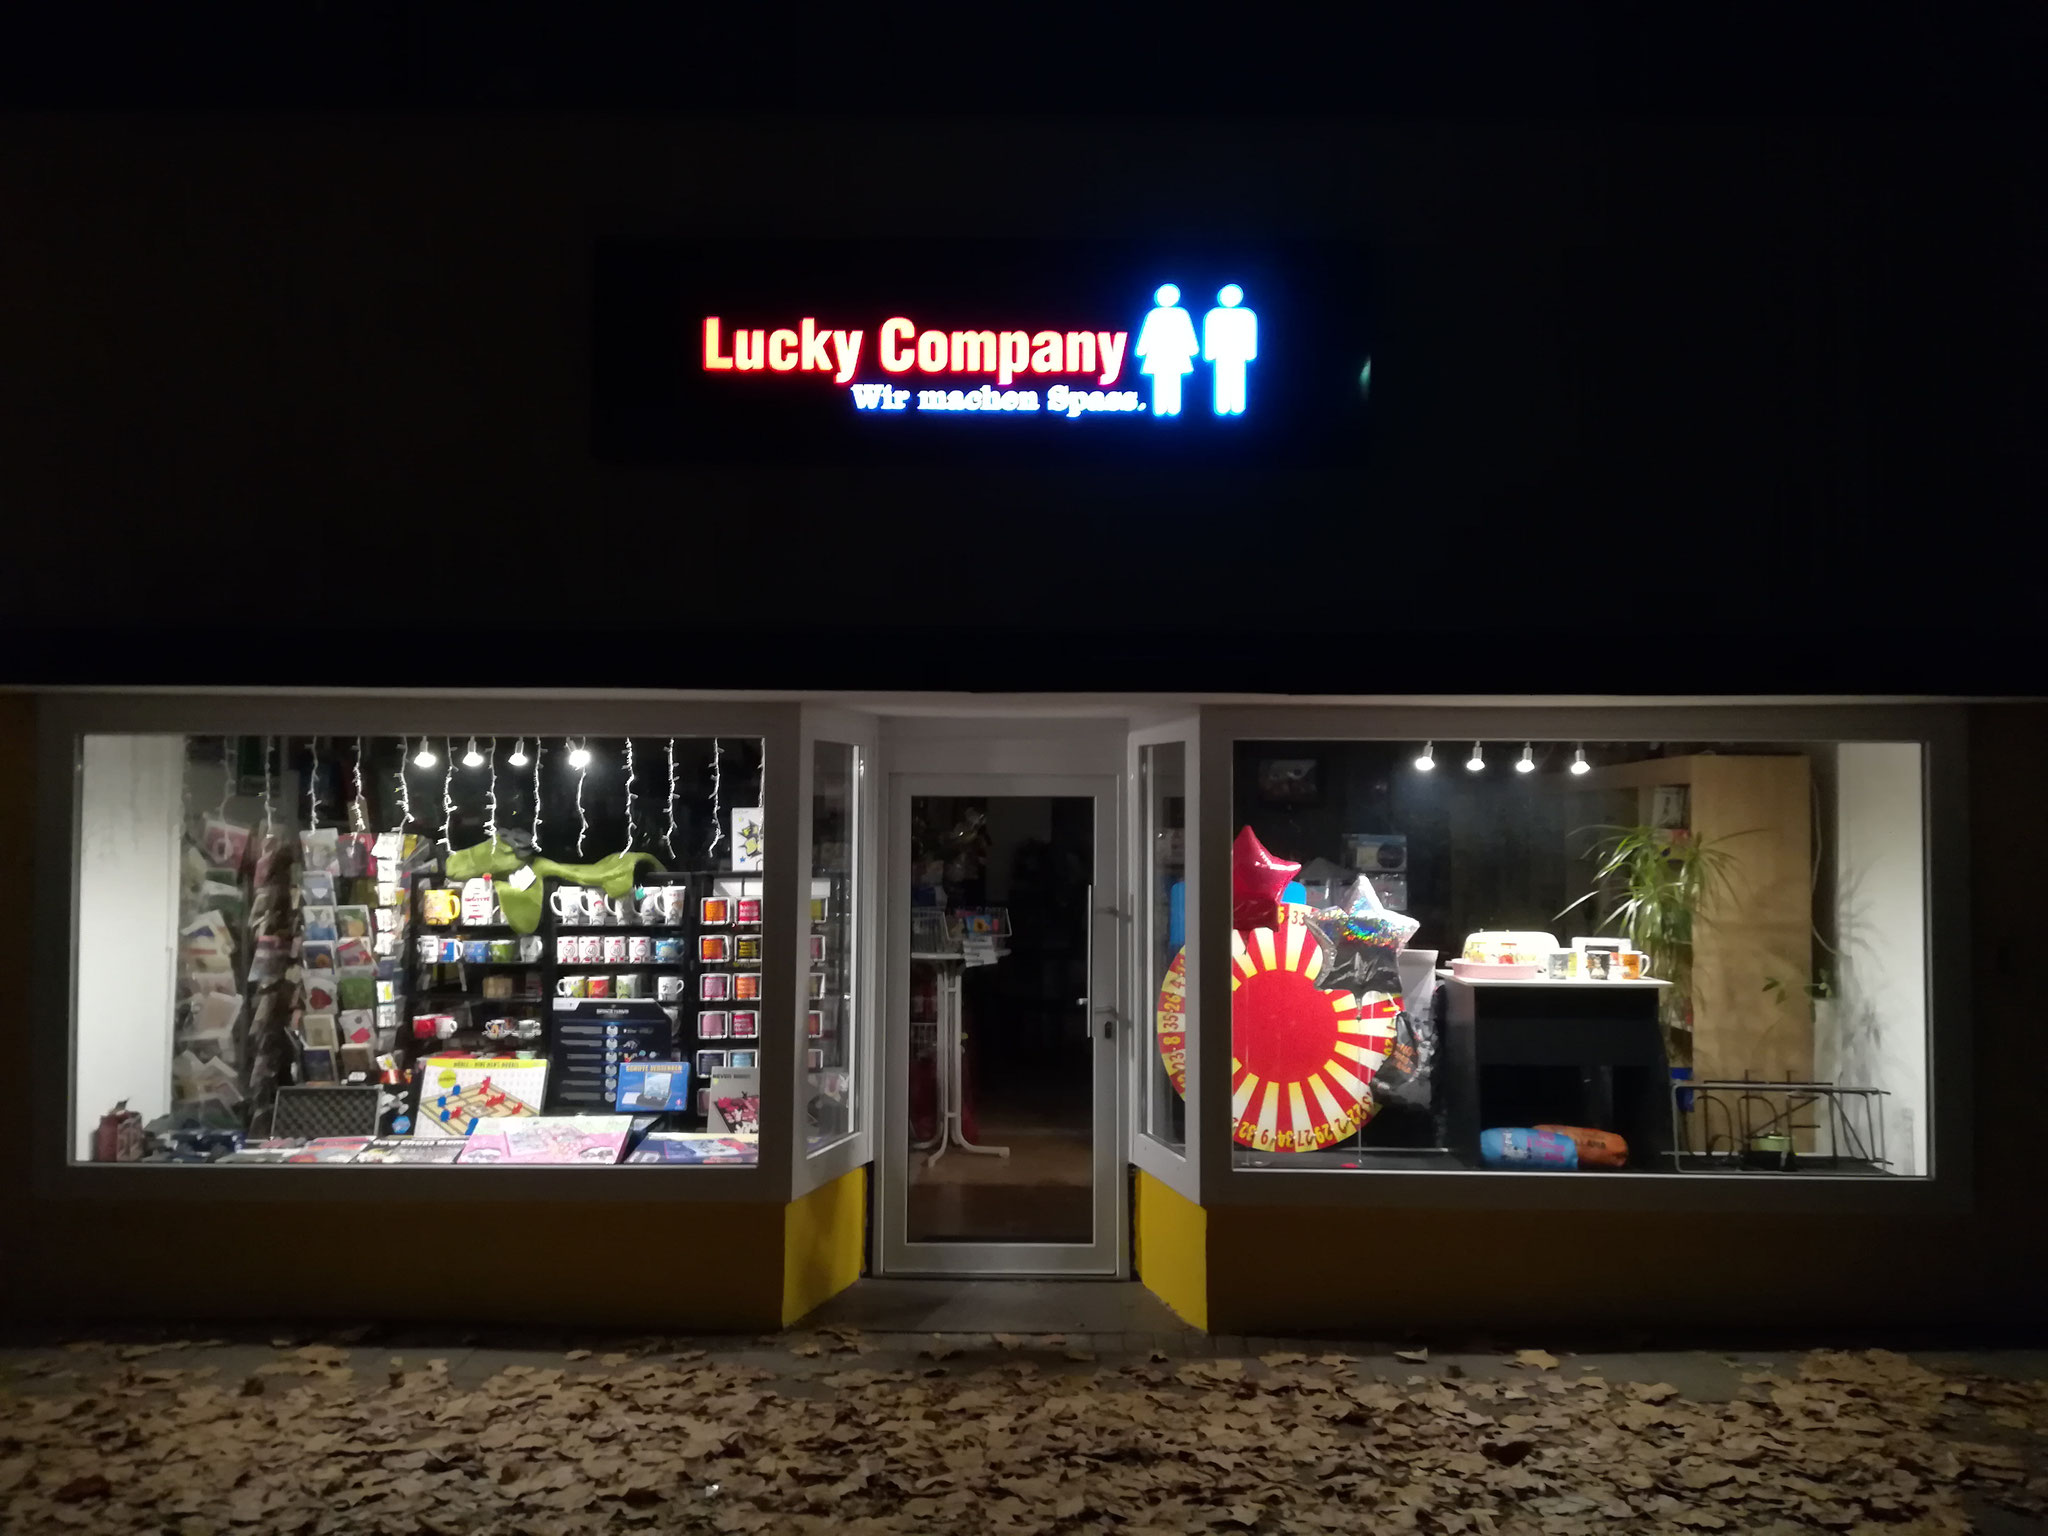 LUCKY COMPANY by Night